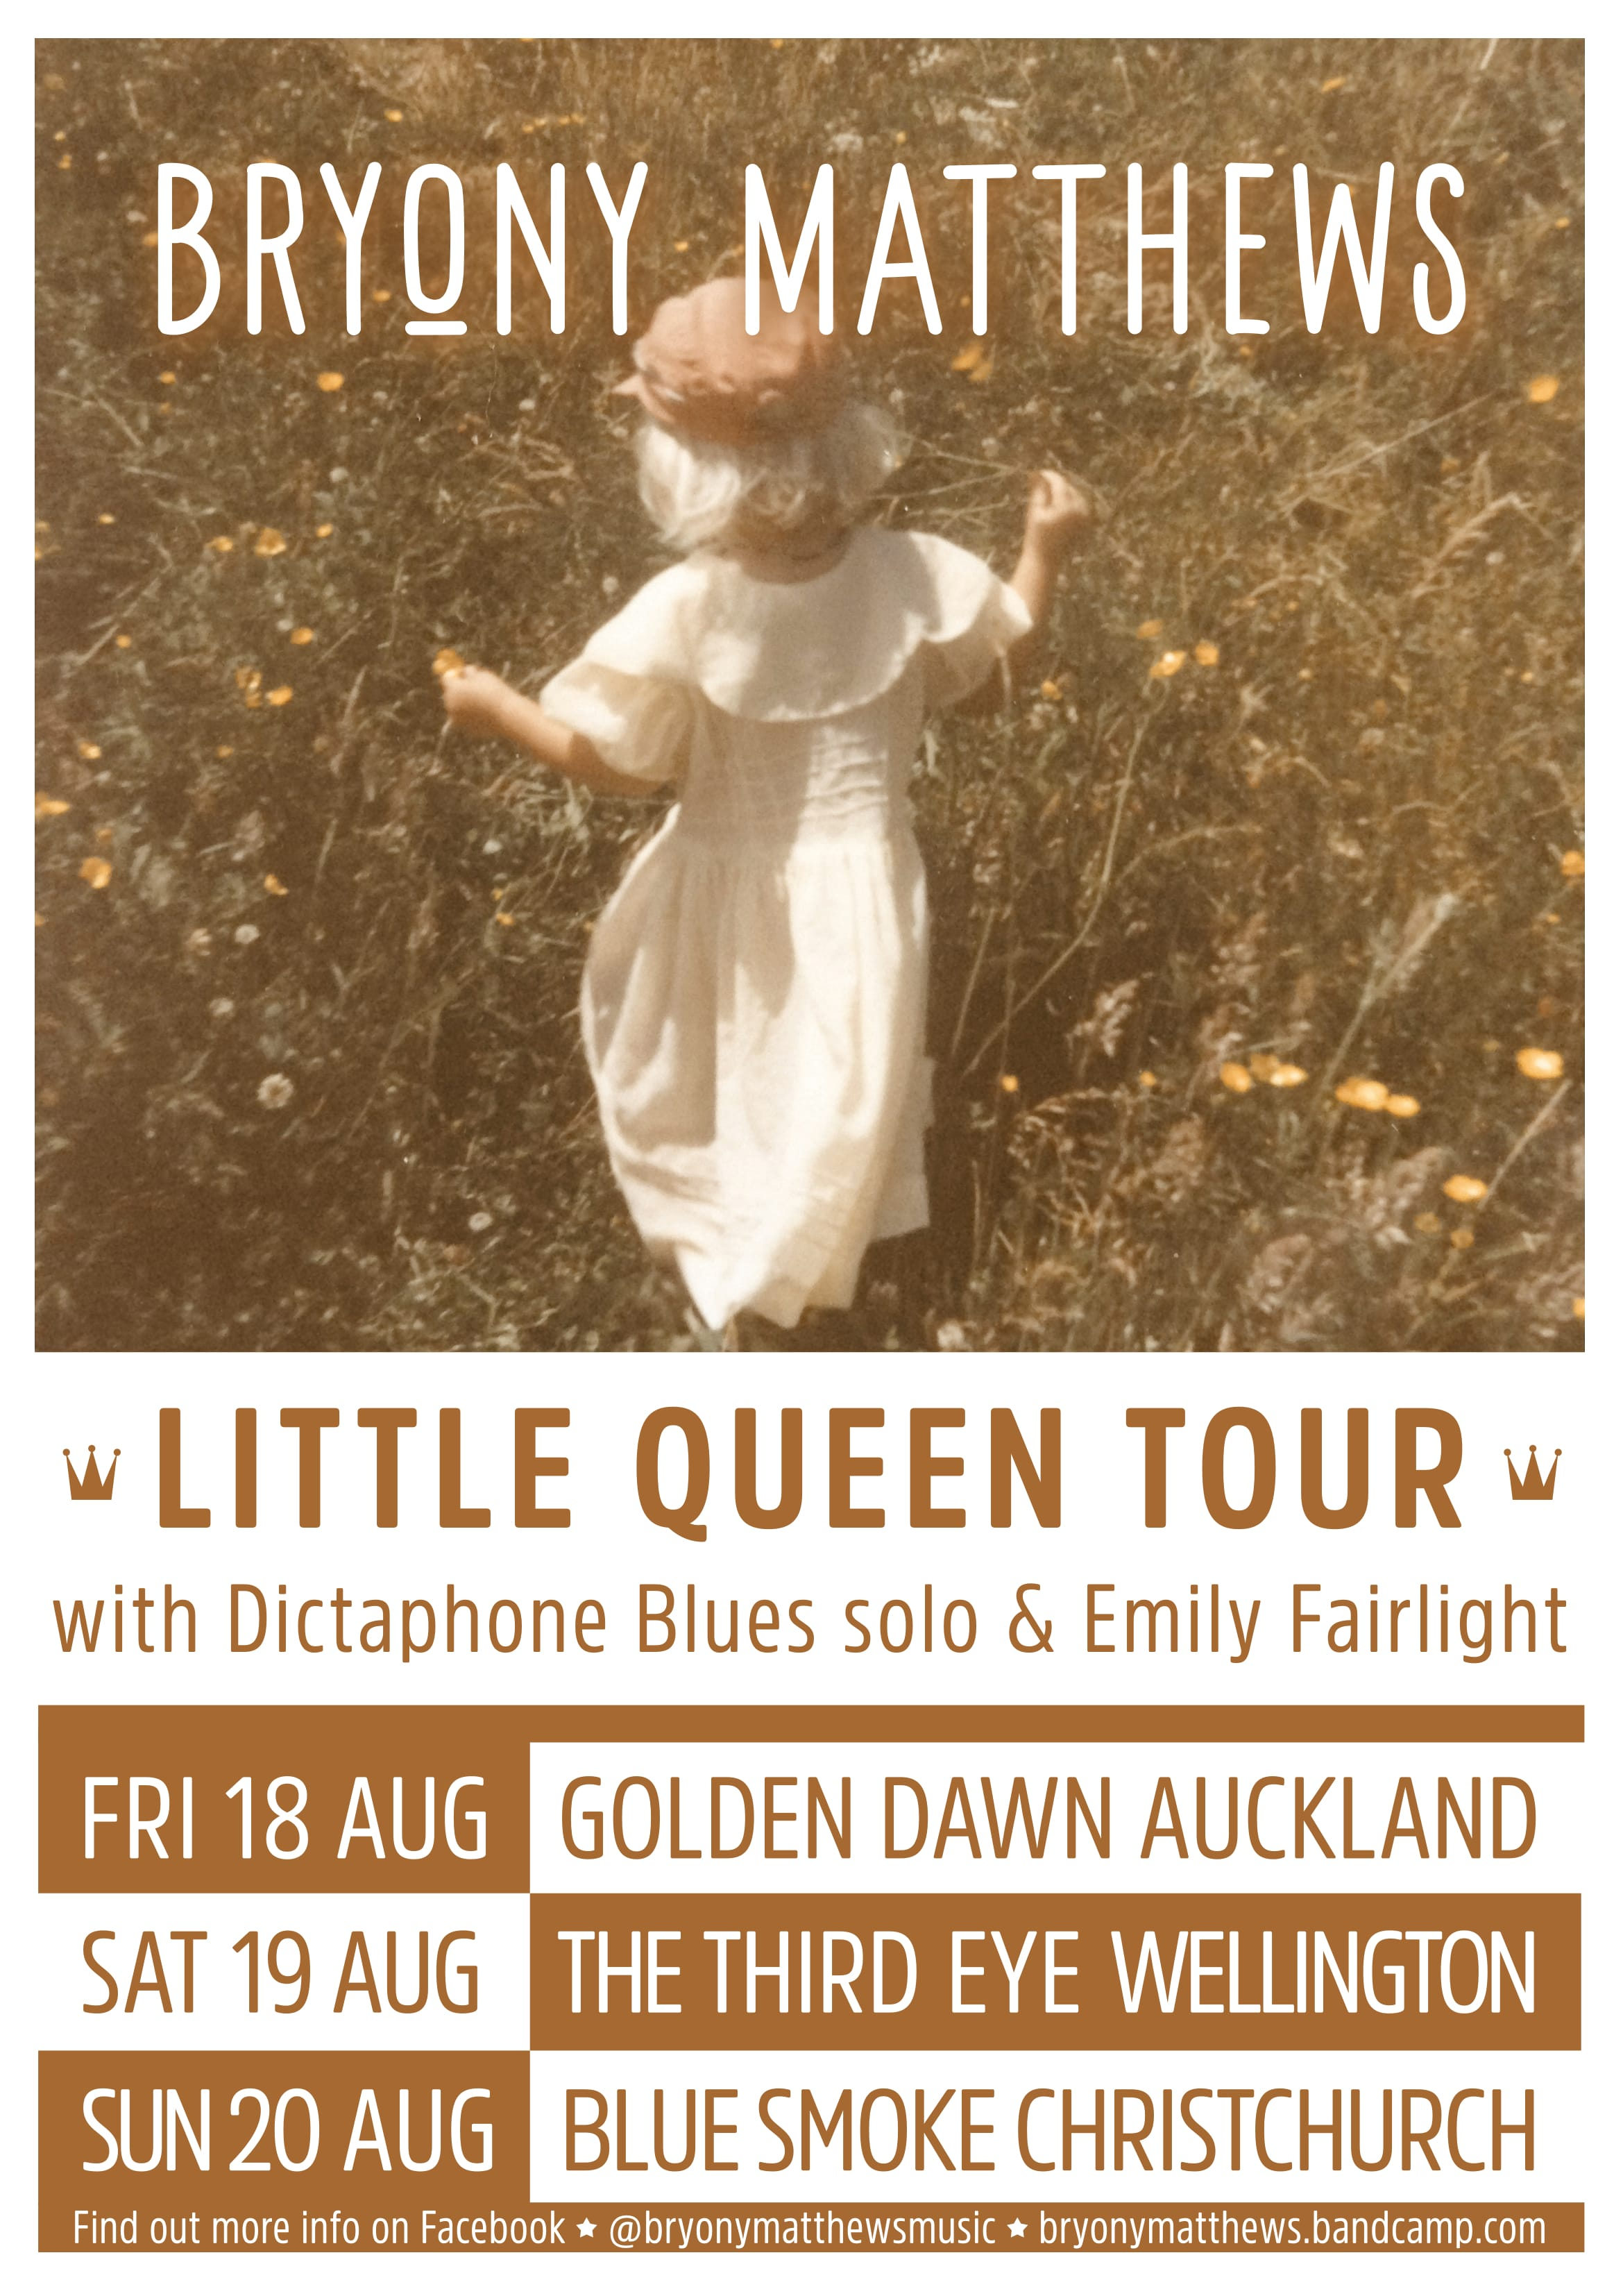 Bryony Matthews Little Queen Tour